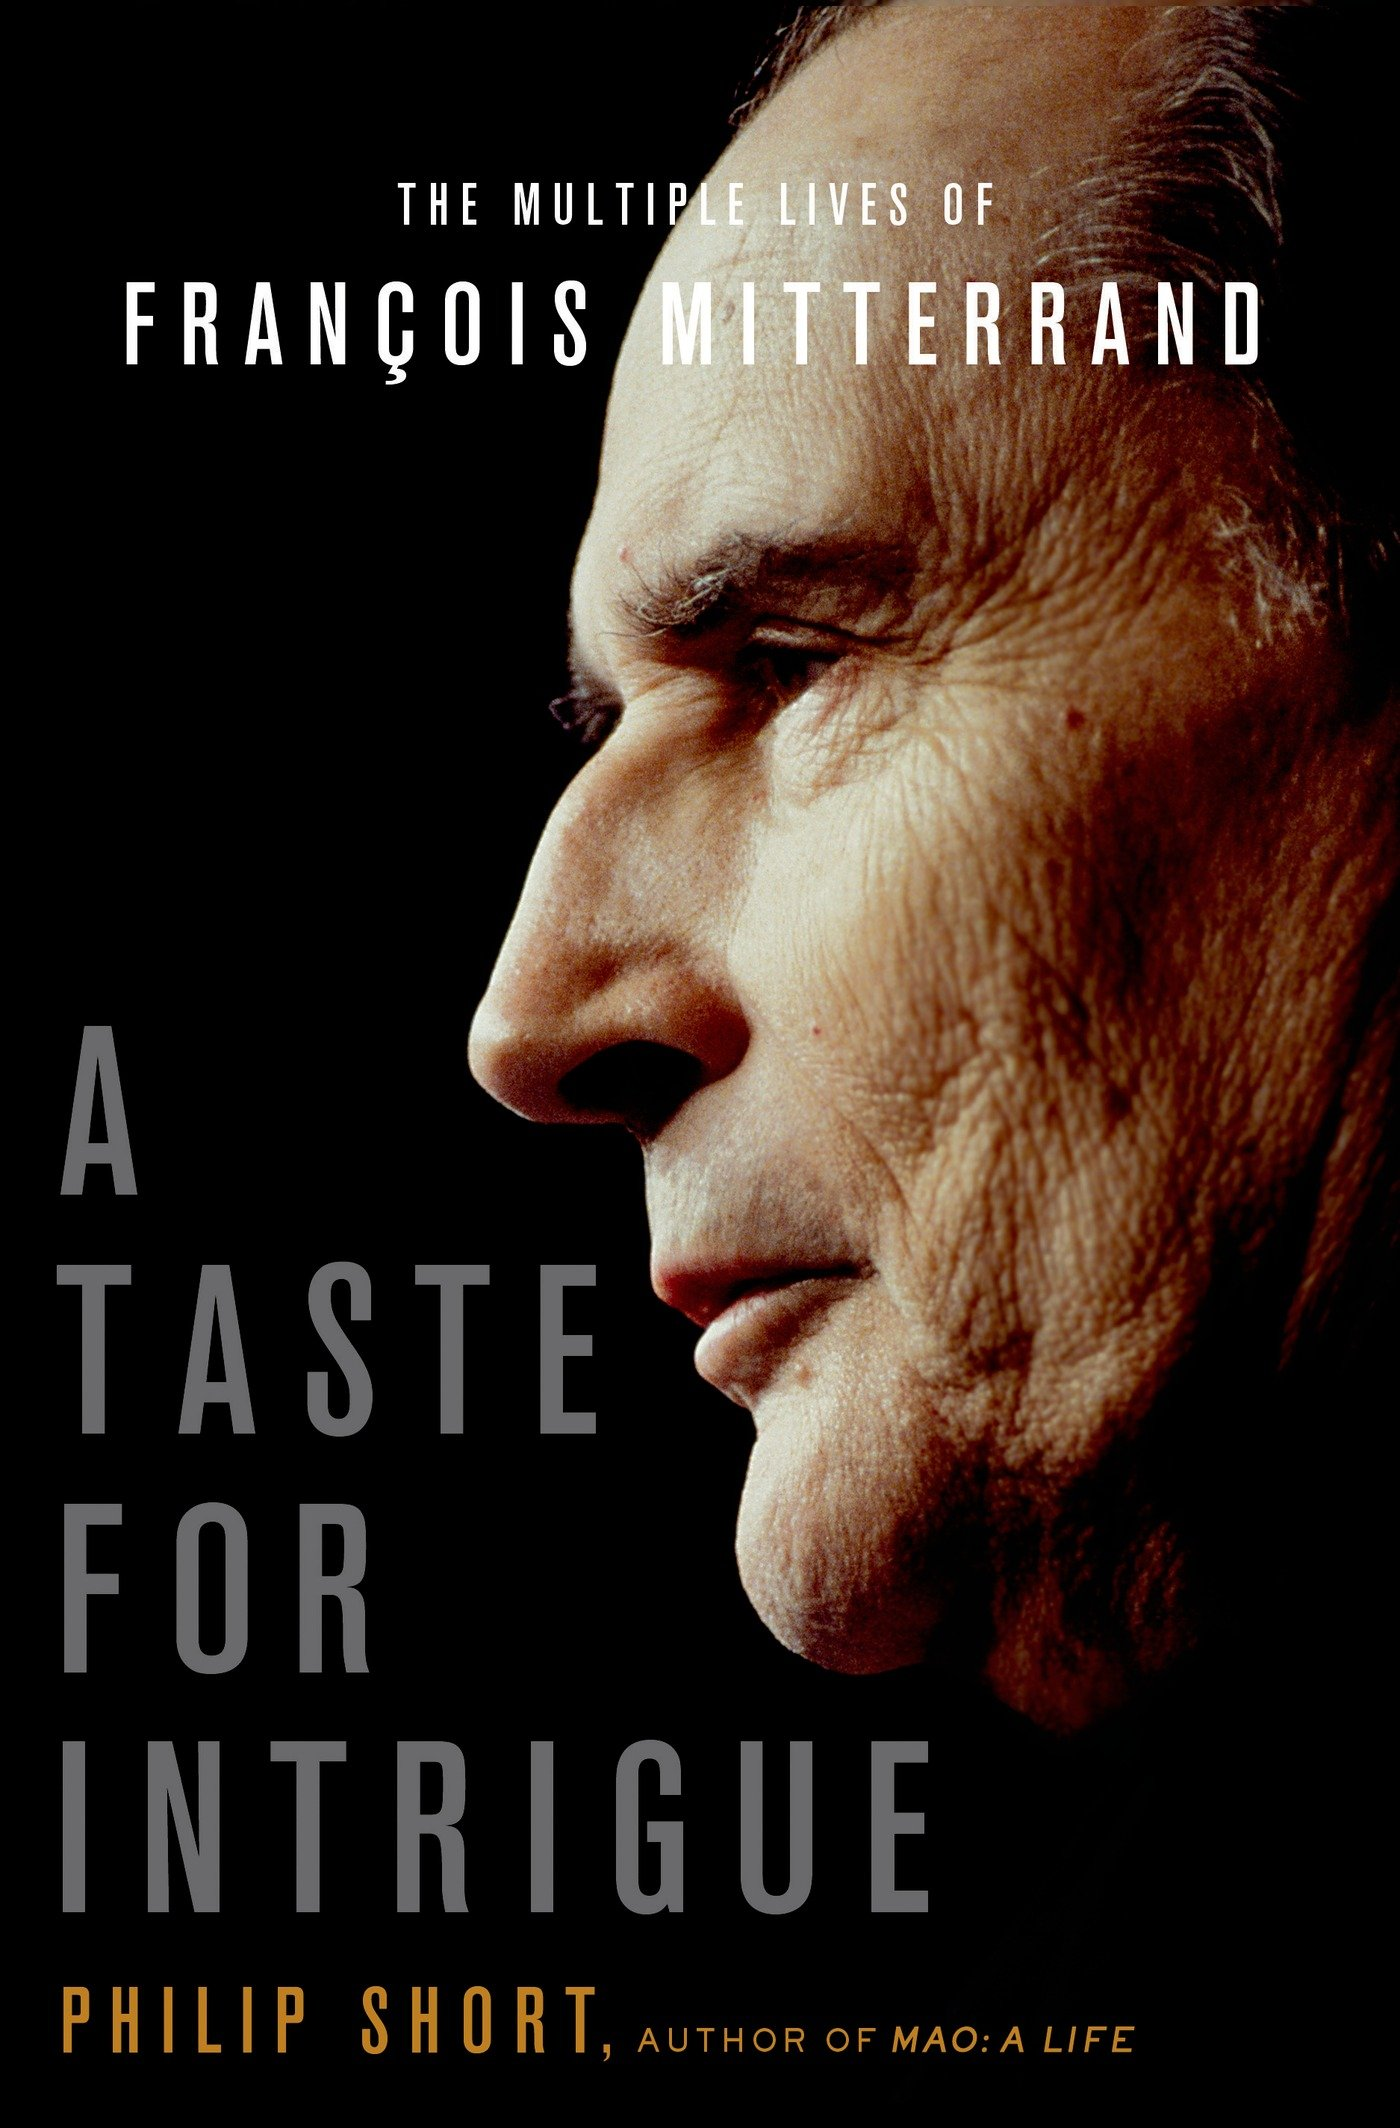 Amazon.com: A Taste for Intrigue: The Multiple Lives of François ...